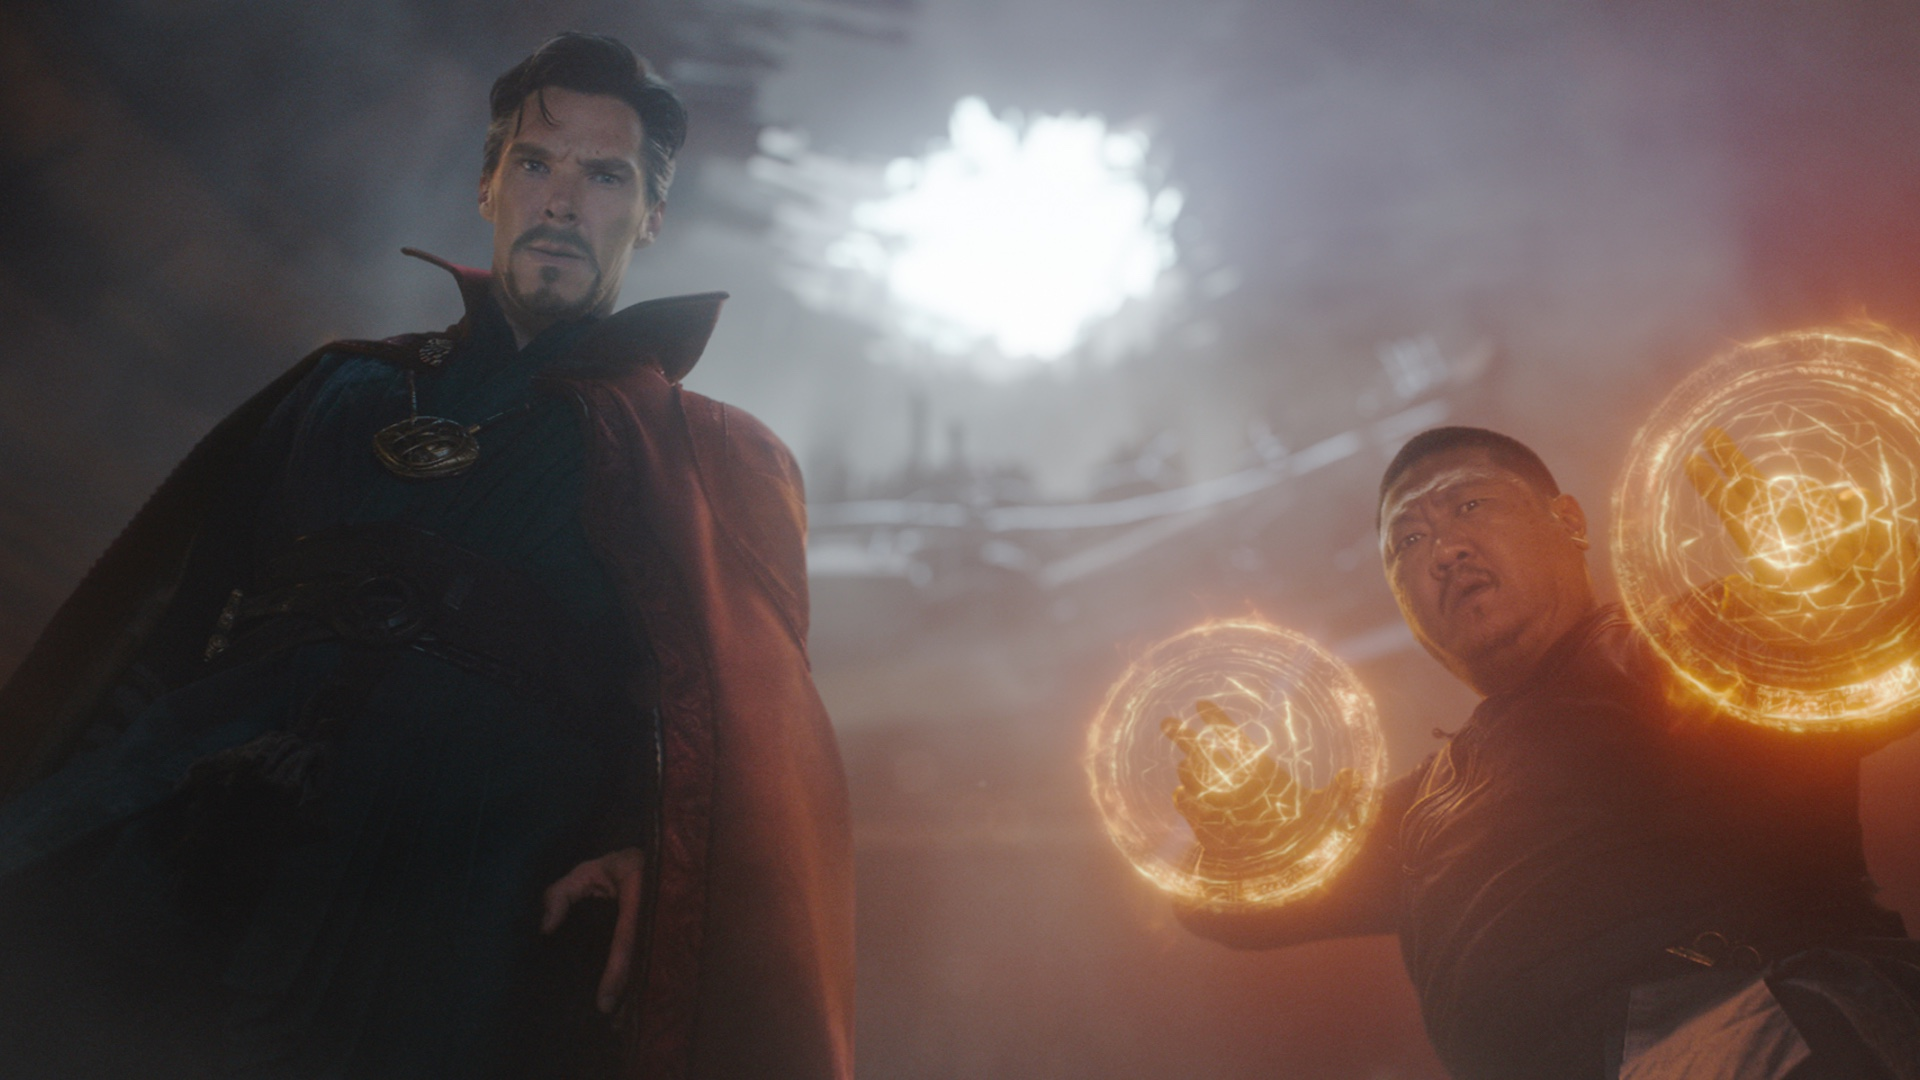 avengers-infinity-war-directors-discuss-an-epic-battle-scene-the-infinity-stones-and-doctor-strange-social.jpg